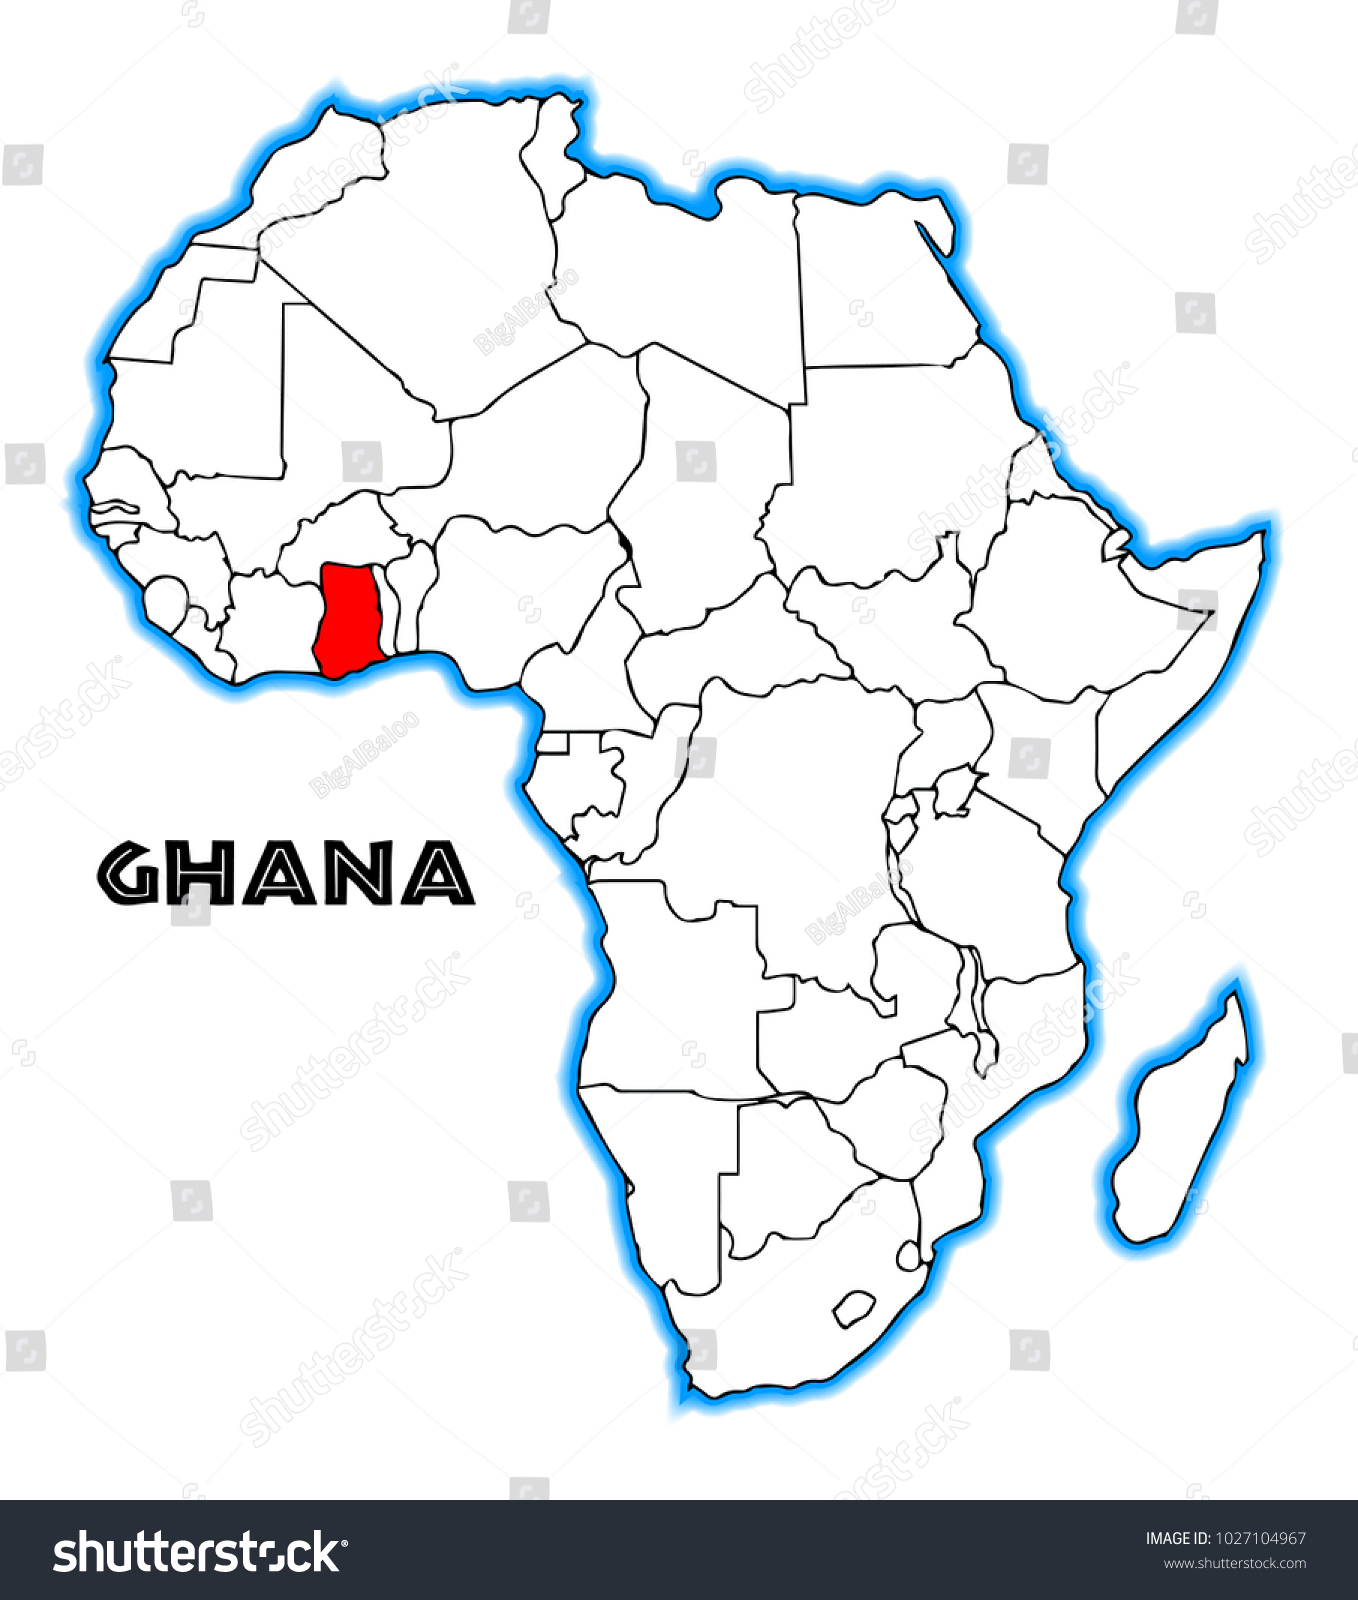 Ghana Outline Inset Into Map Africa Stock Illustration 1027104967